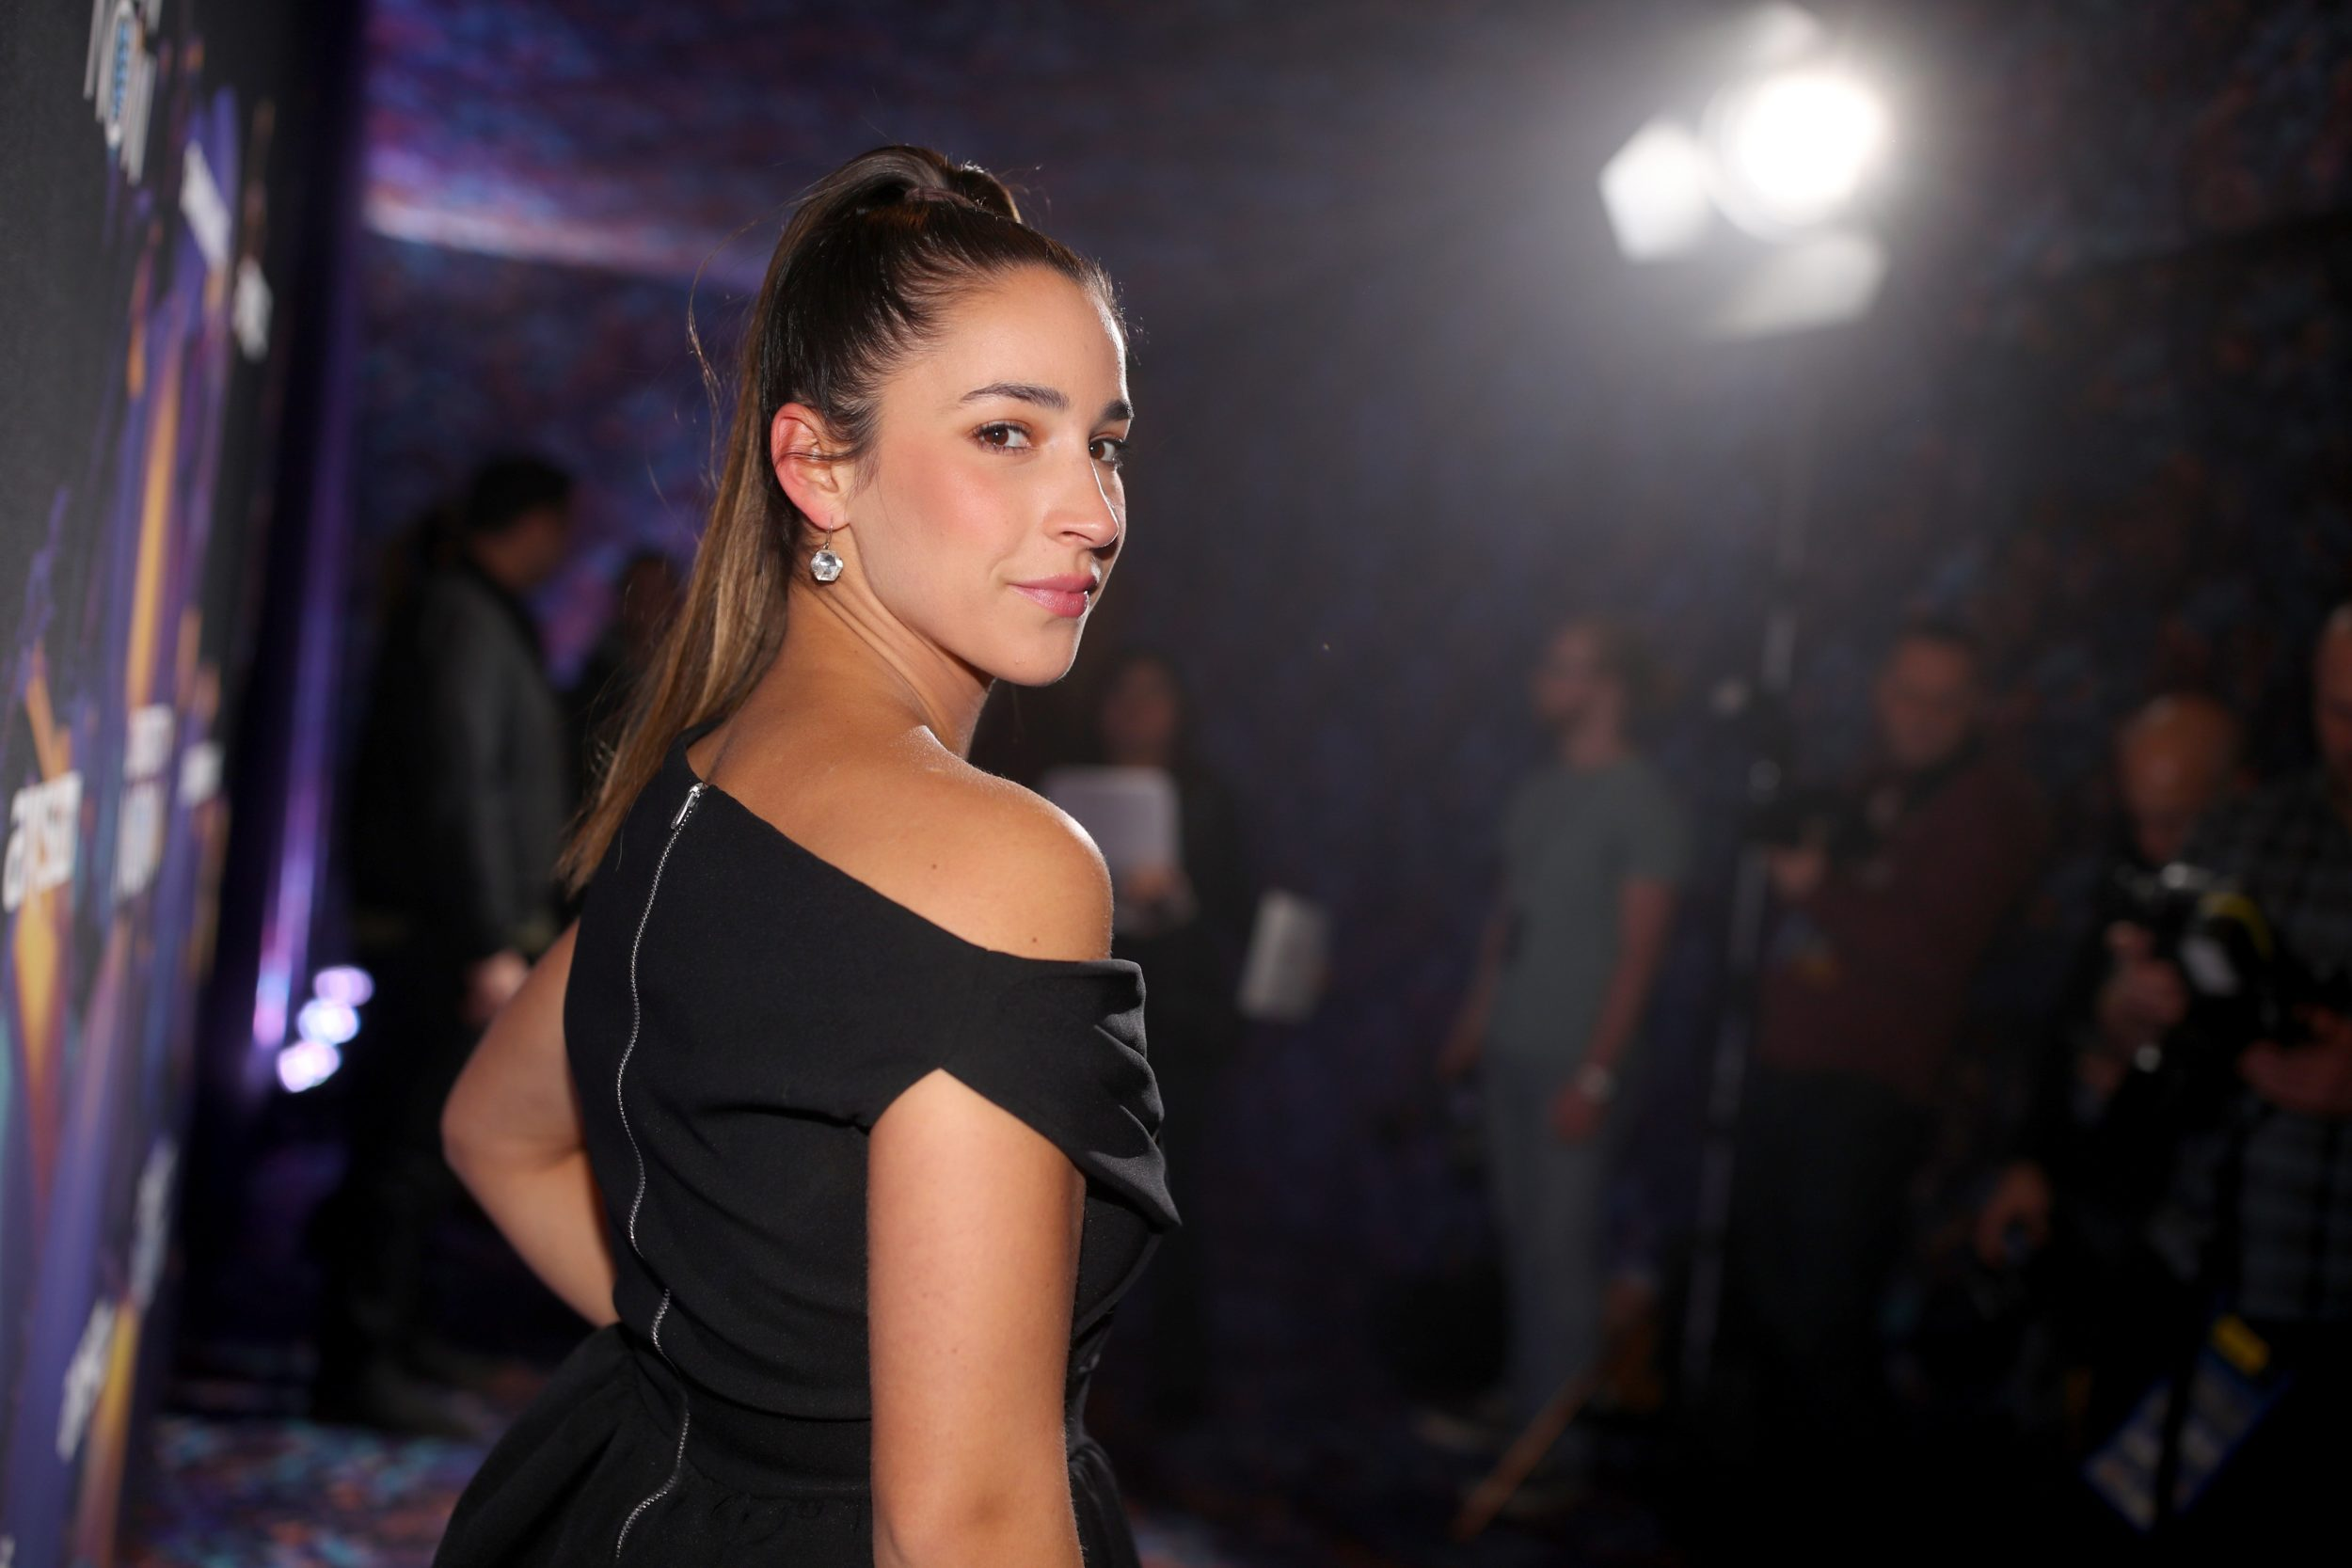 Aly Raisman is suing USA Gymnastics and the U.S. Olympic Committee, and we continue to applaud her bravery